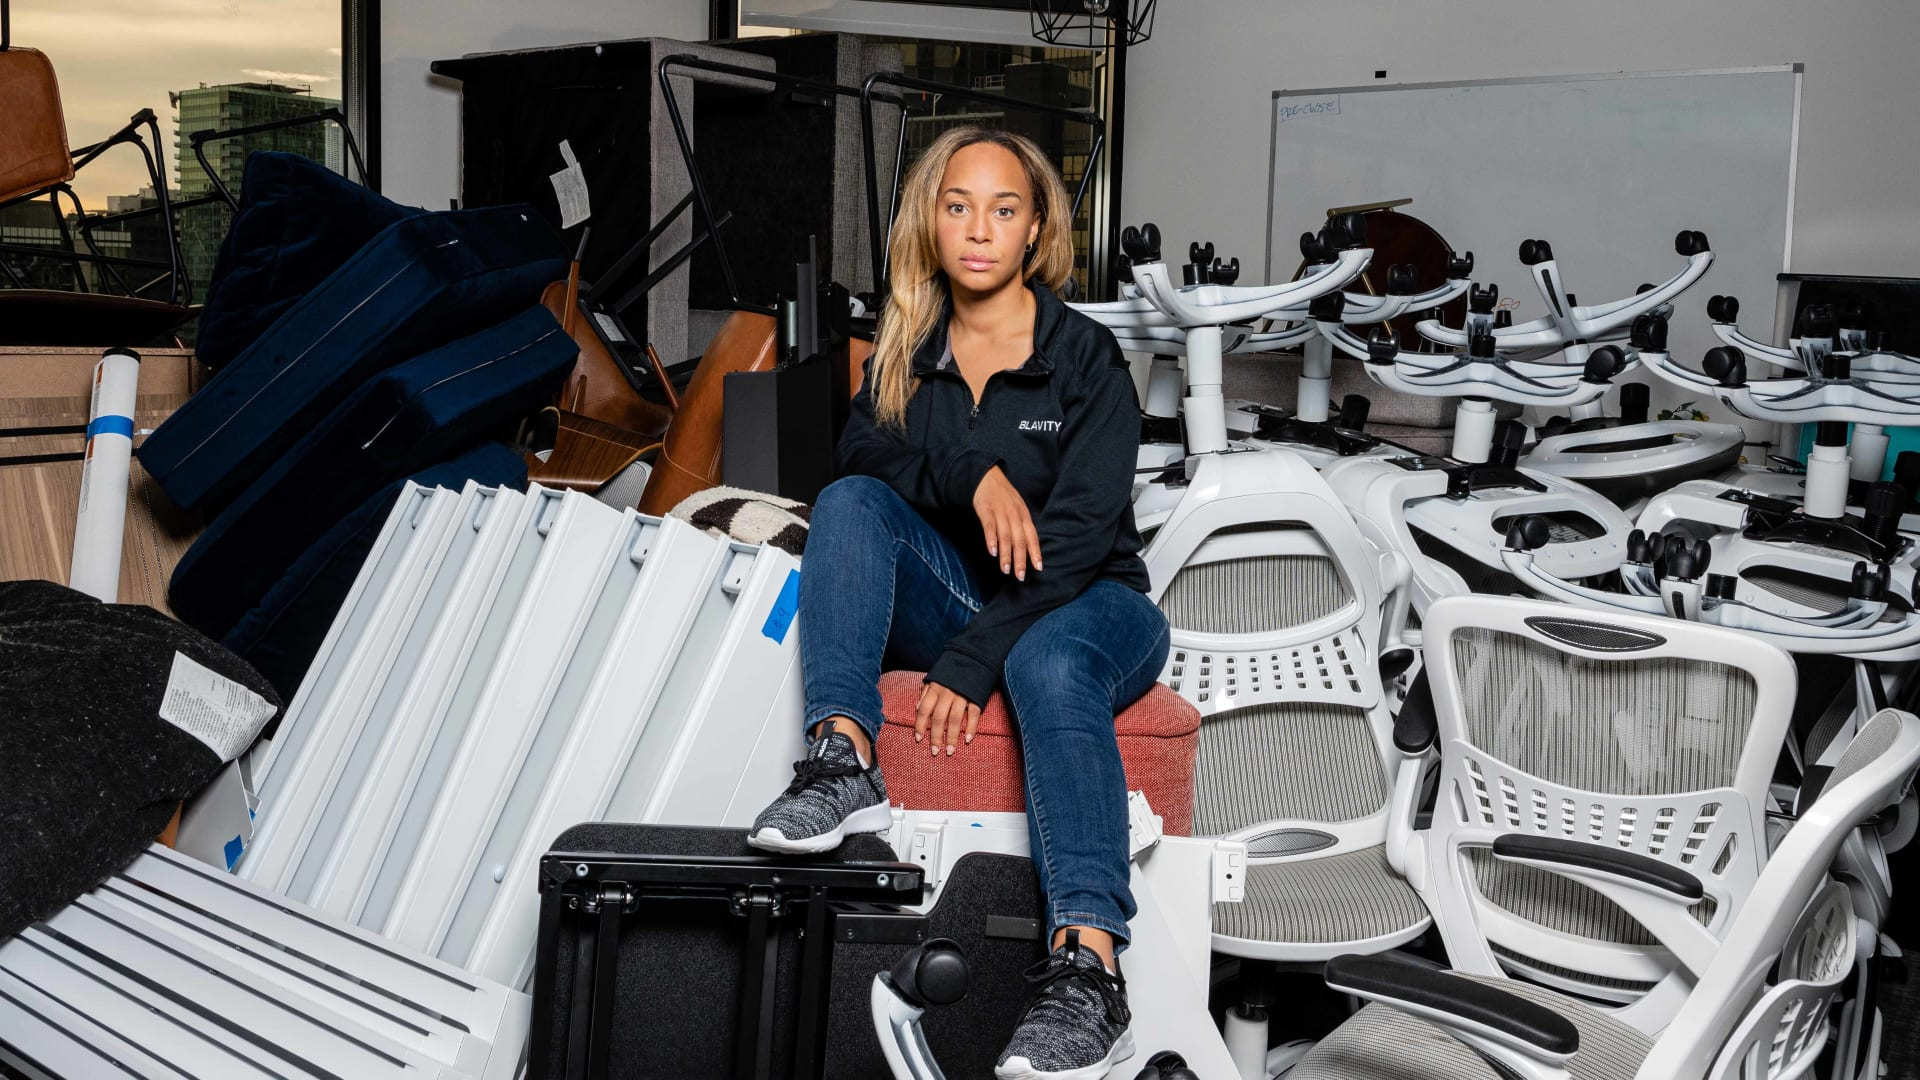 Morgan DeBaun, founder and CEO of Blavity, sits atop a pile of no-longer-in-use furniture in her L.A. office.